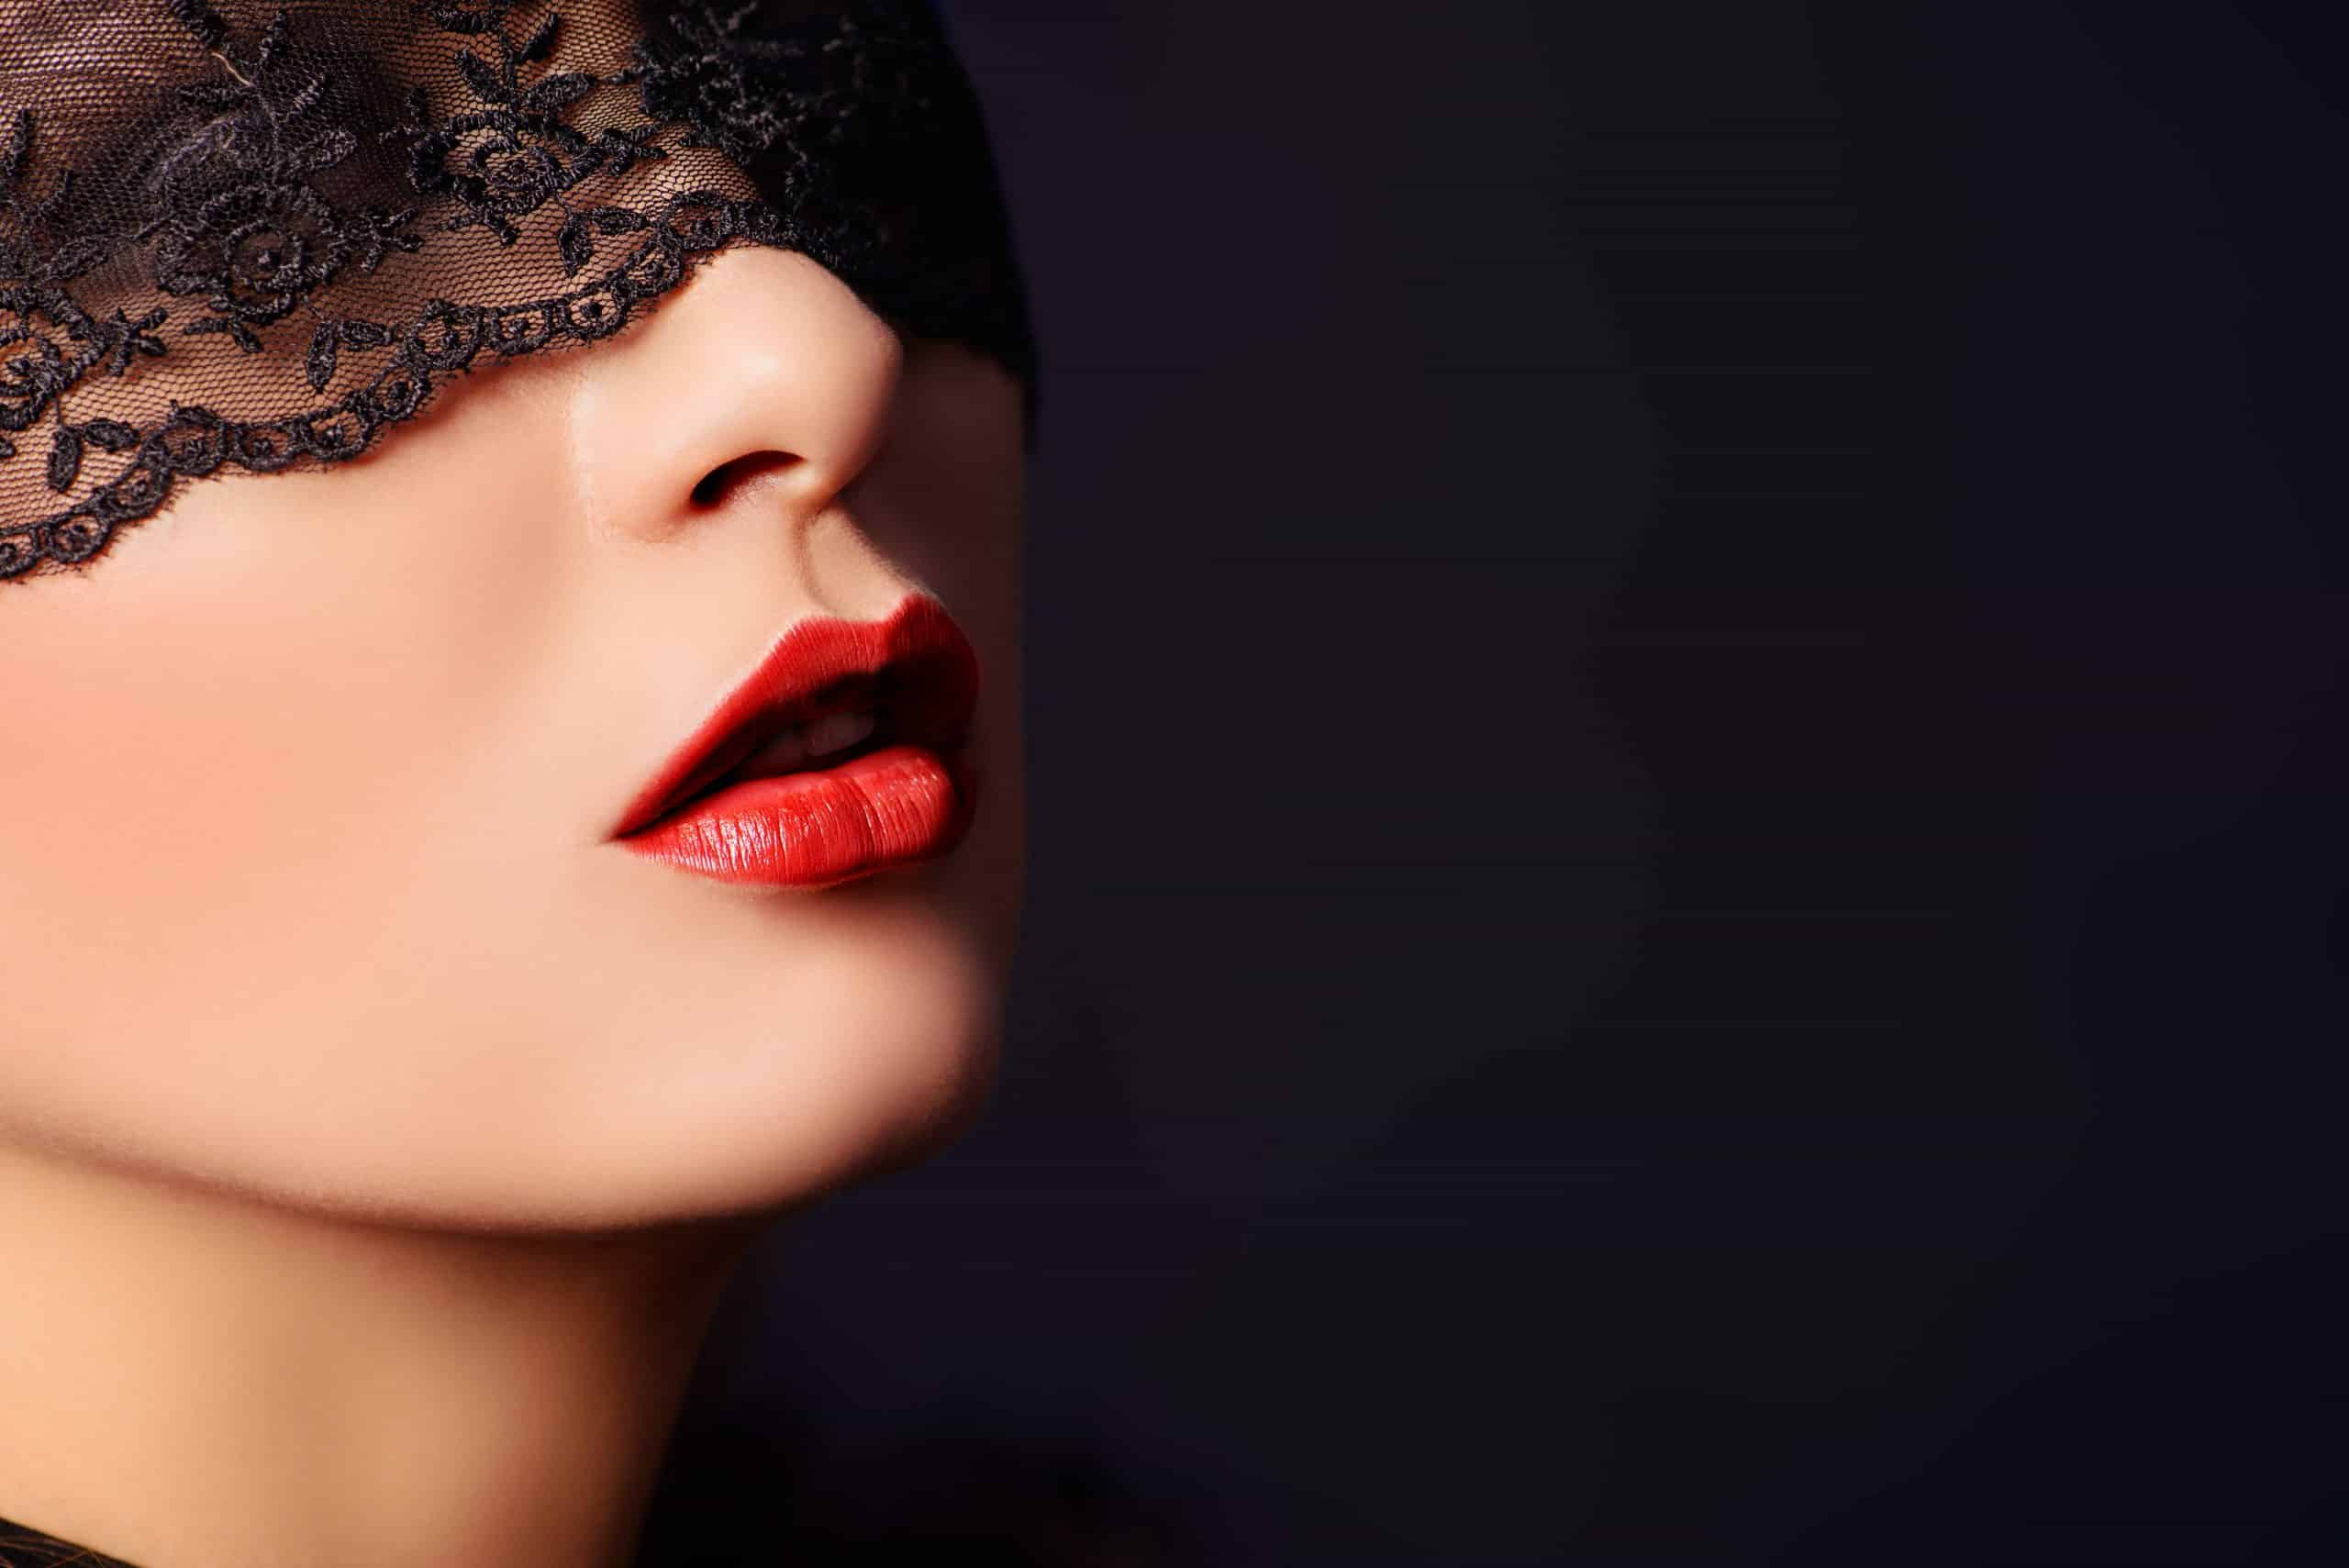 Viennas secret model with hot red lips